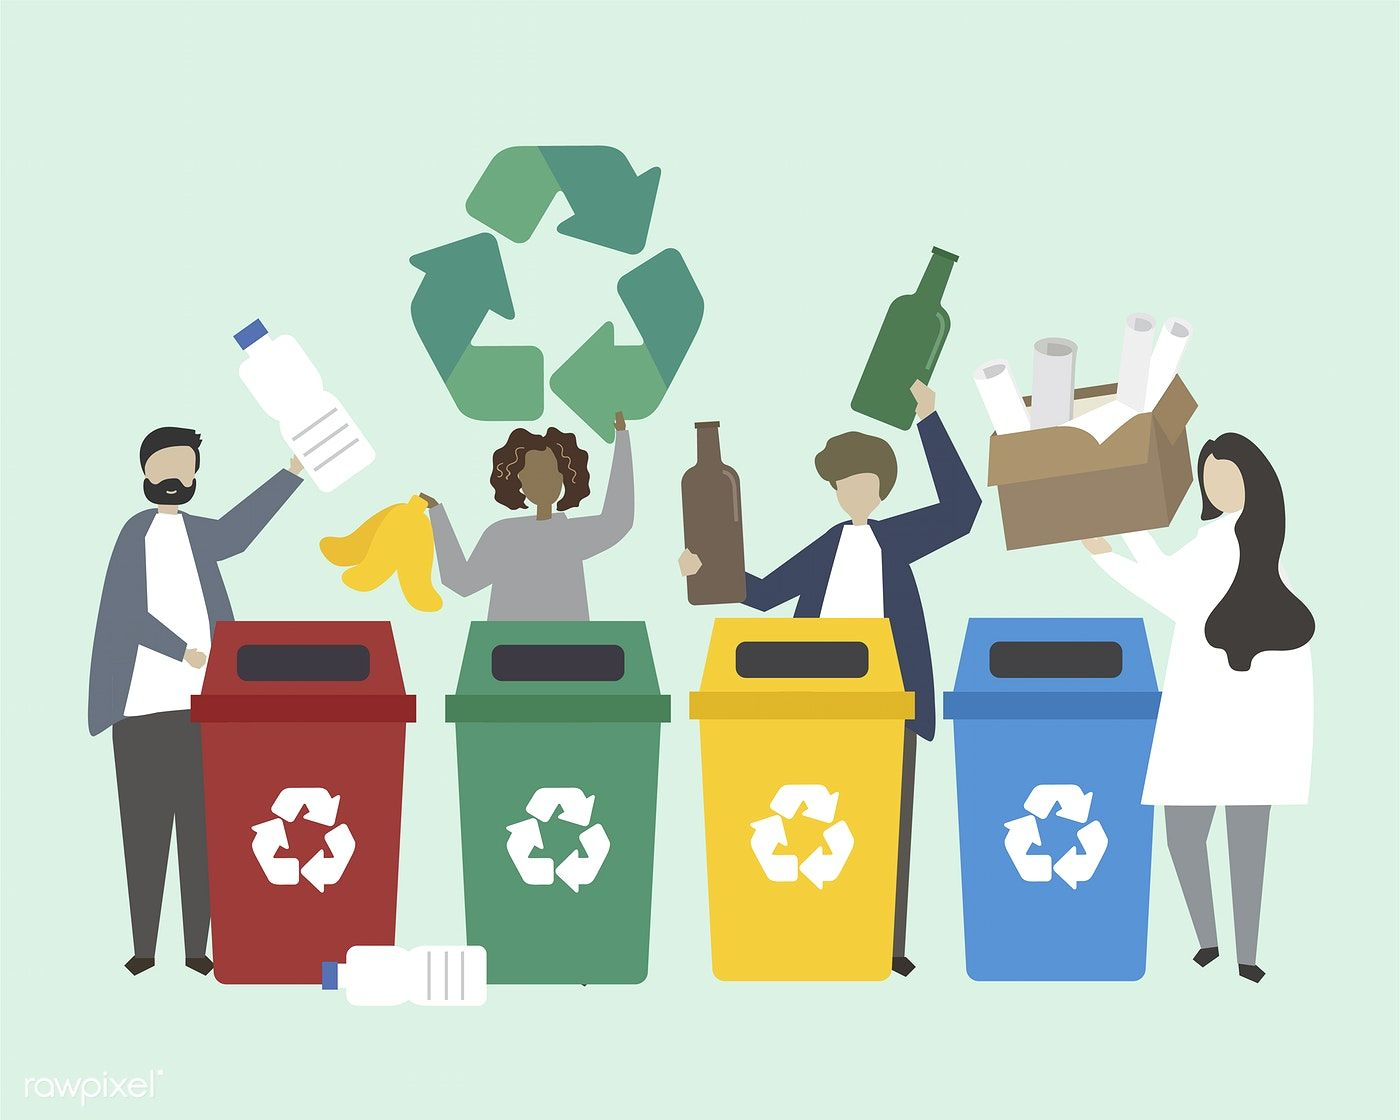 Download free vector of People sorting garbage into recycle bins